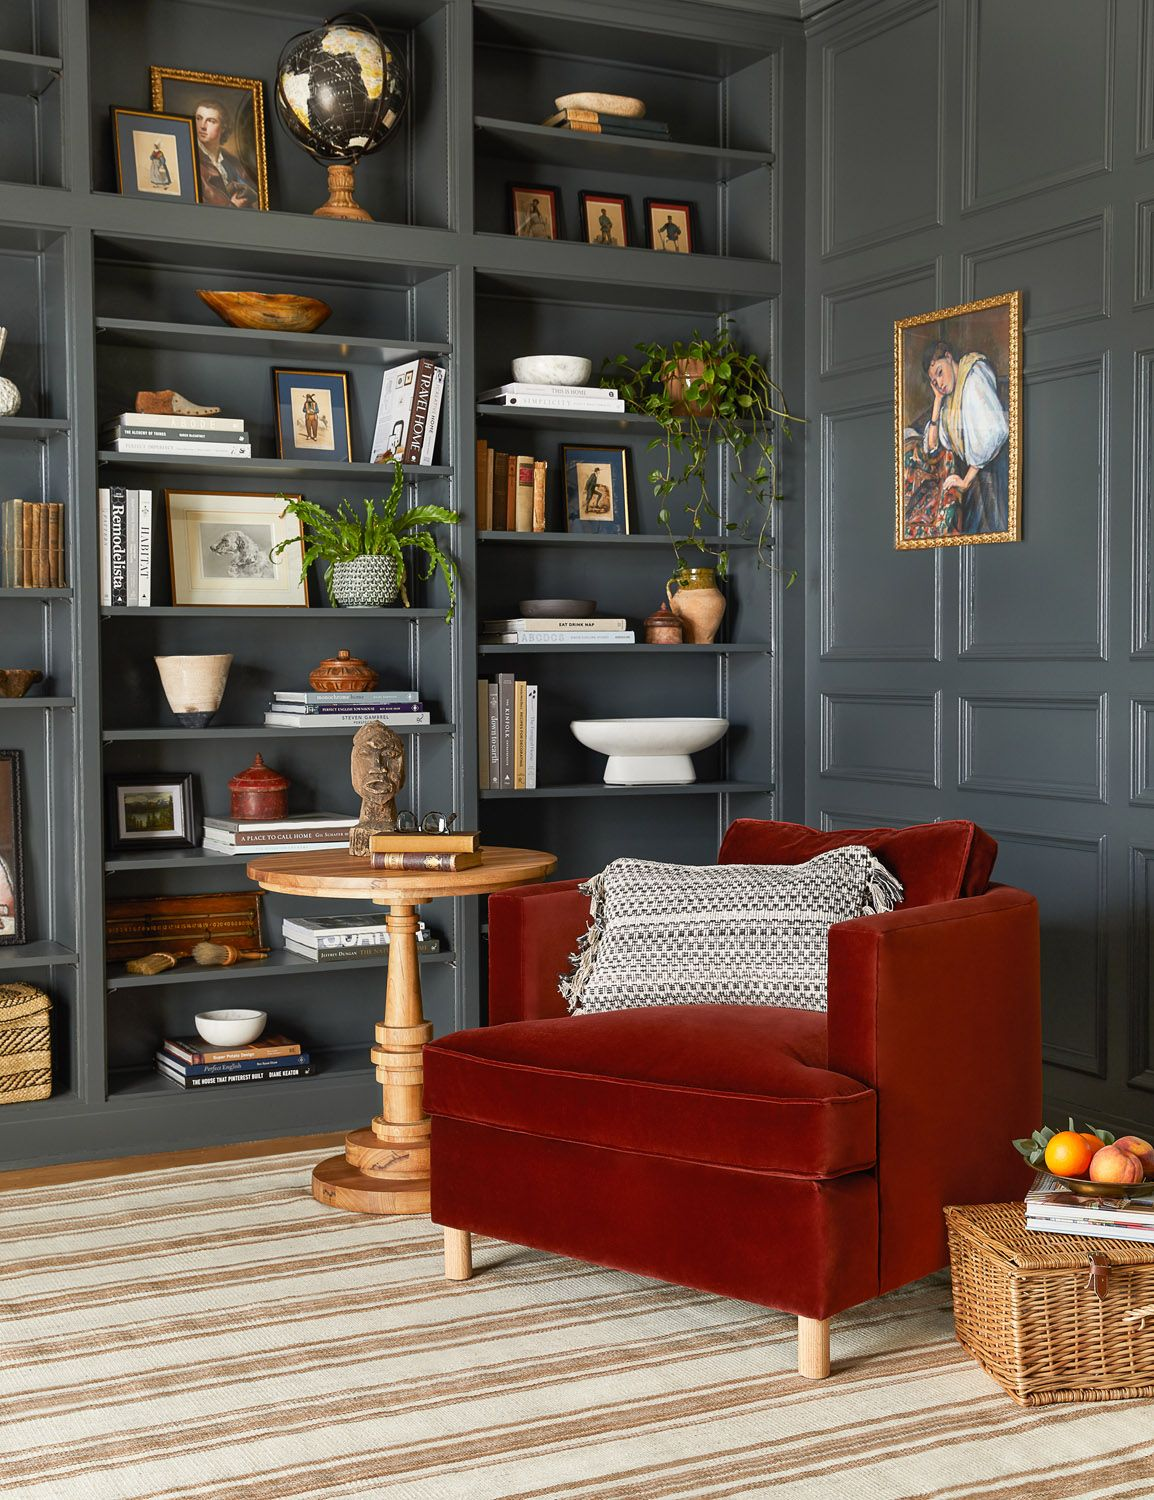 5 Minutes With Ginny Macdonald Rue In 2020 Green Dining Room Dark Living Rooms Living Room Decor #olive #green #walls #living #room